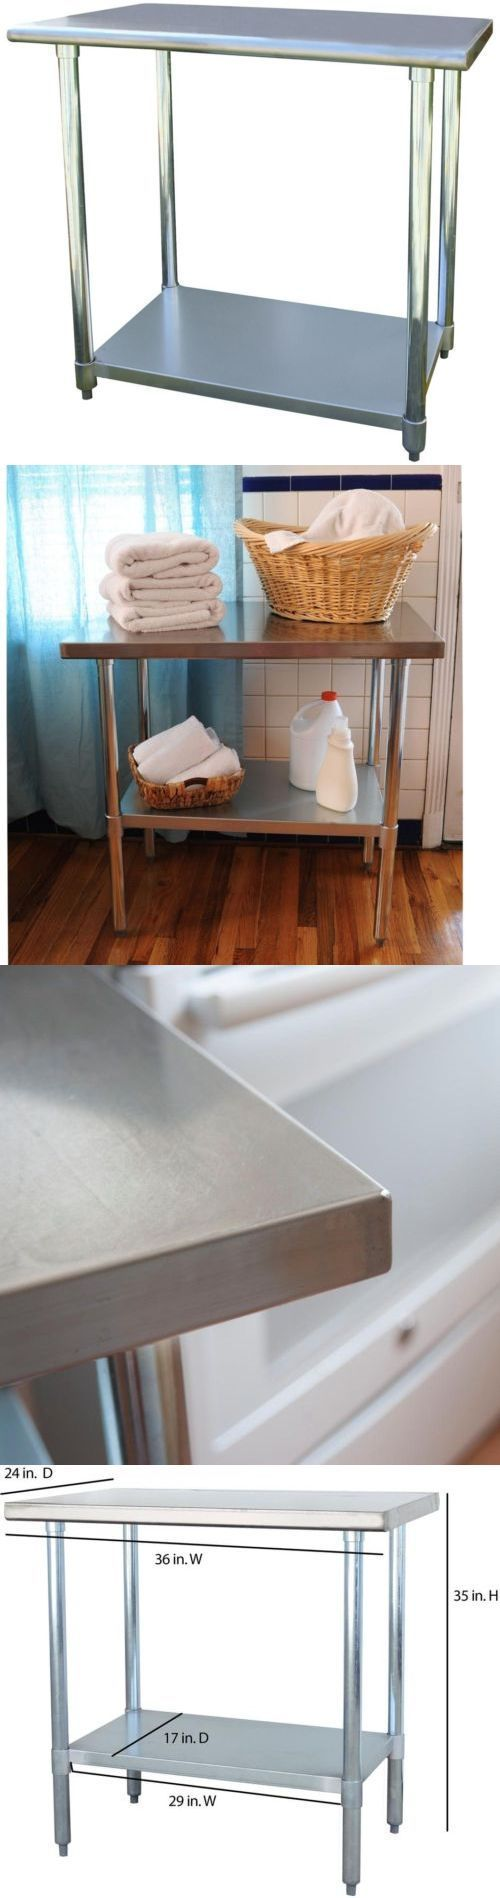 Kitchen Islands Kitchen Carts 115753: Stainless Steel Kitchen Utility Table  36 Home Garage Laundry Room